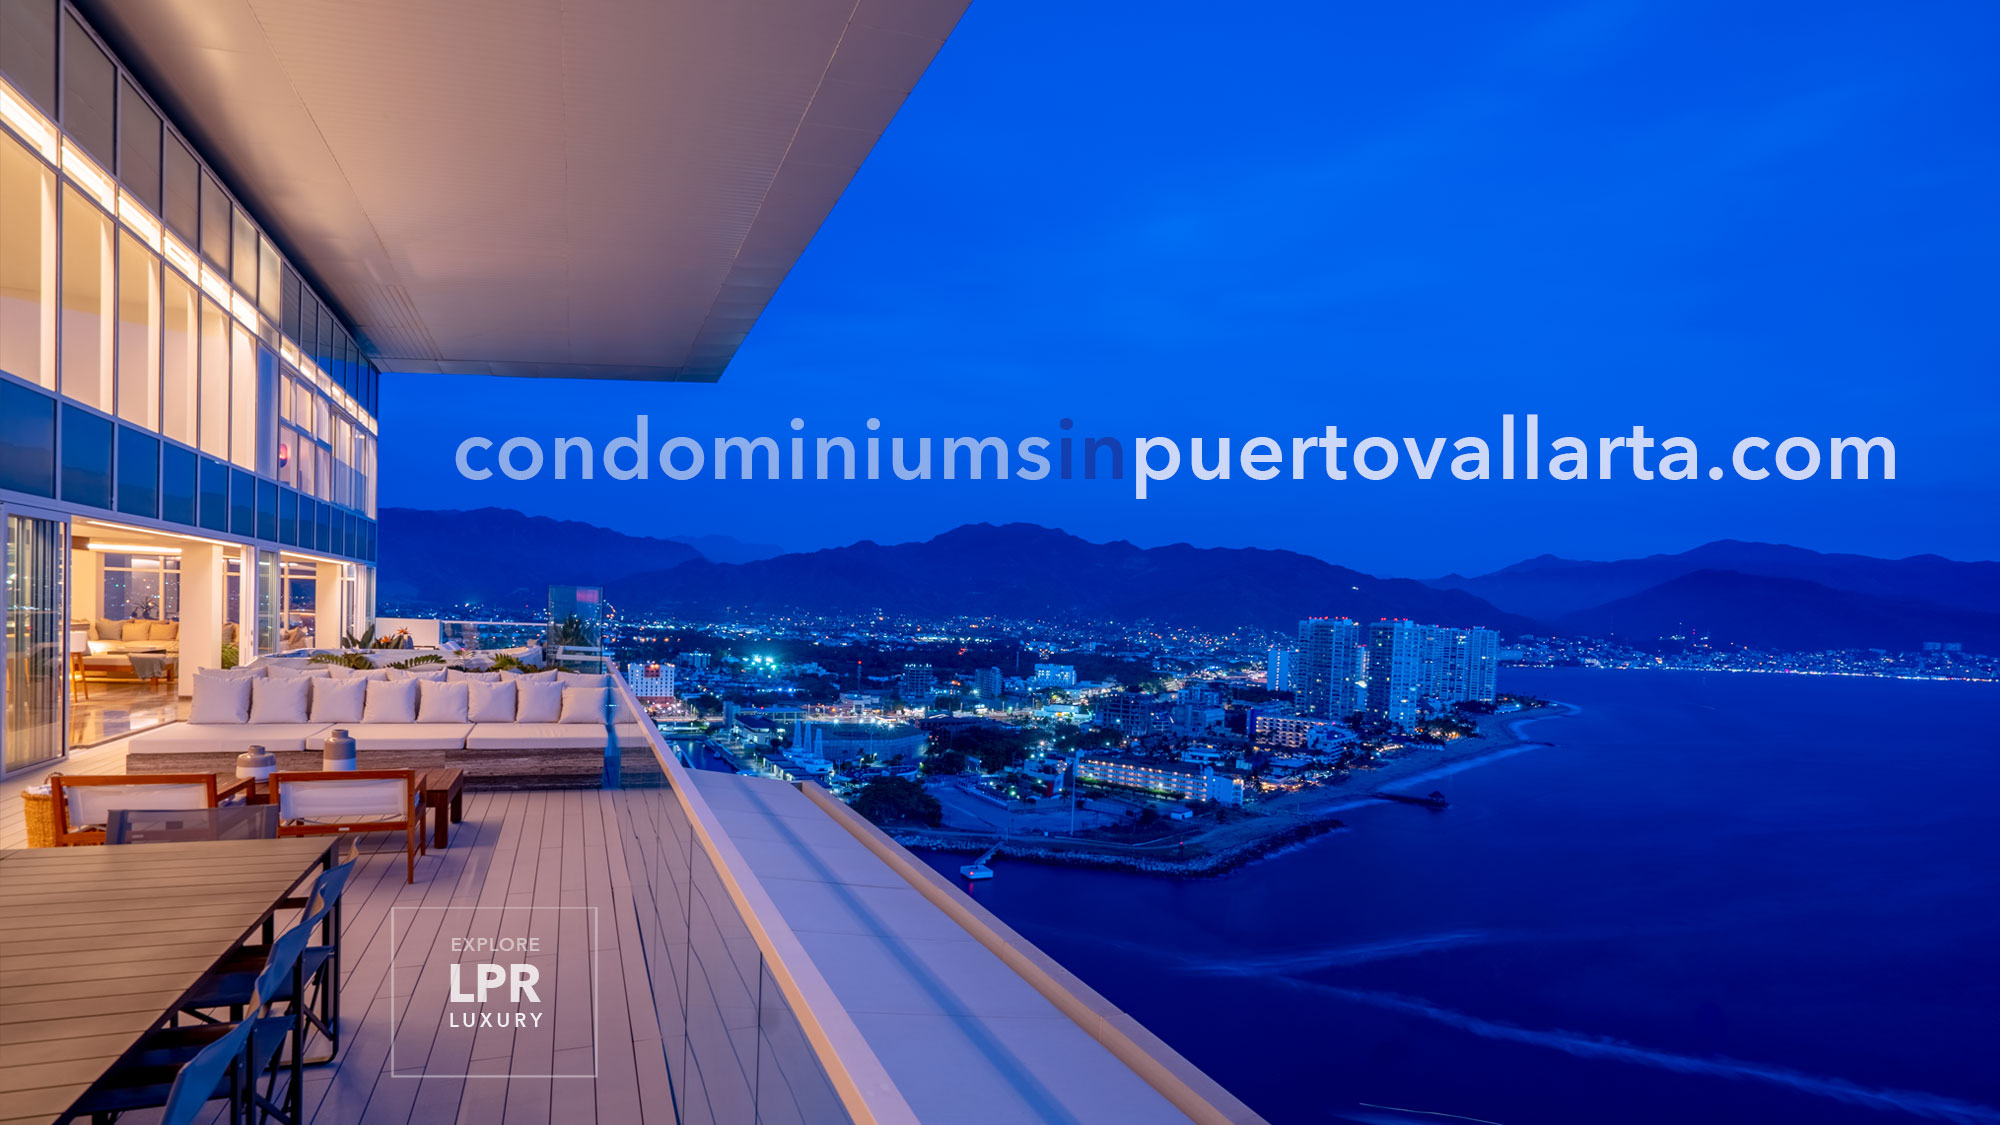 Explore the Puerto Vallarta | Riviera Nayarit condominium market with LPR Luxury.